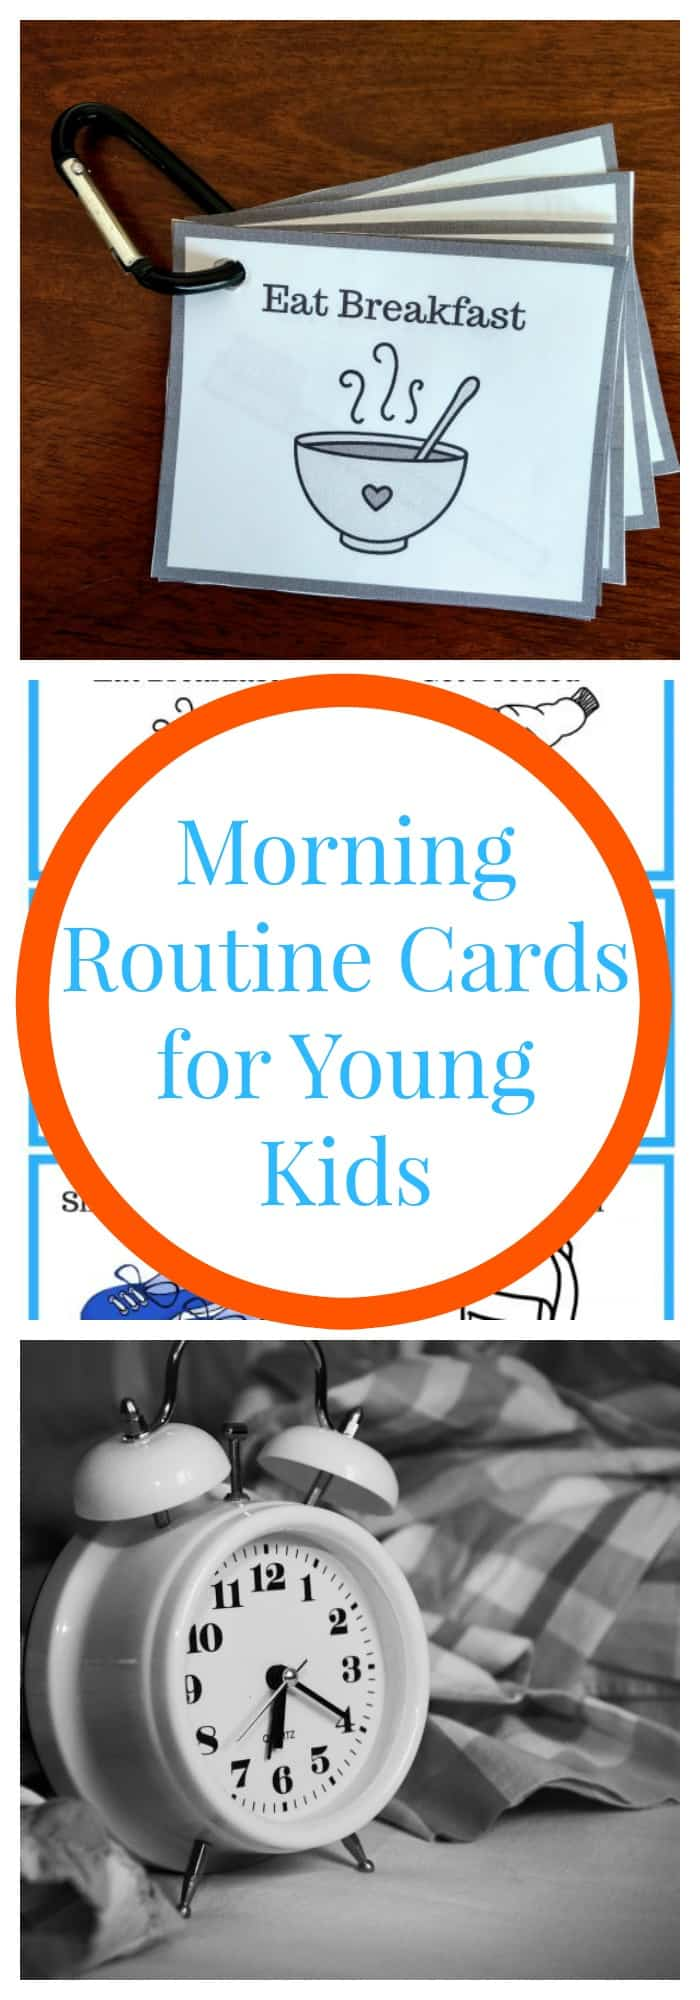 Parenting--Morning Routine Cards for Young Kids--The Organized Mom